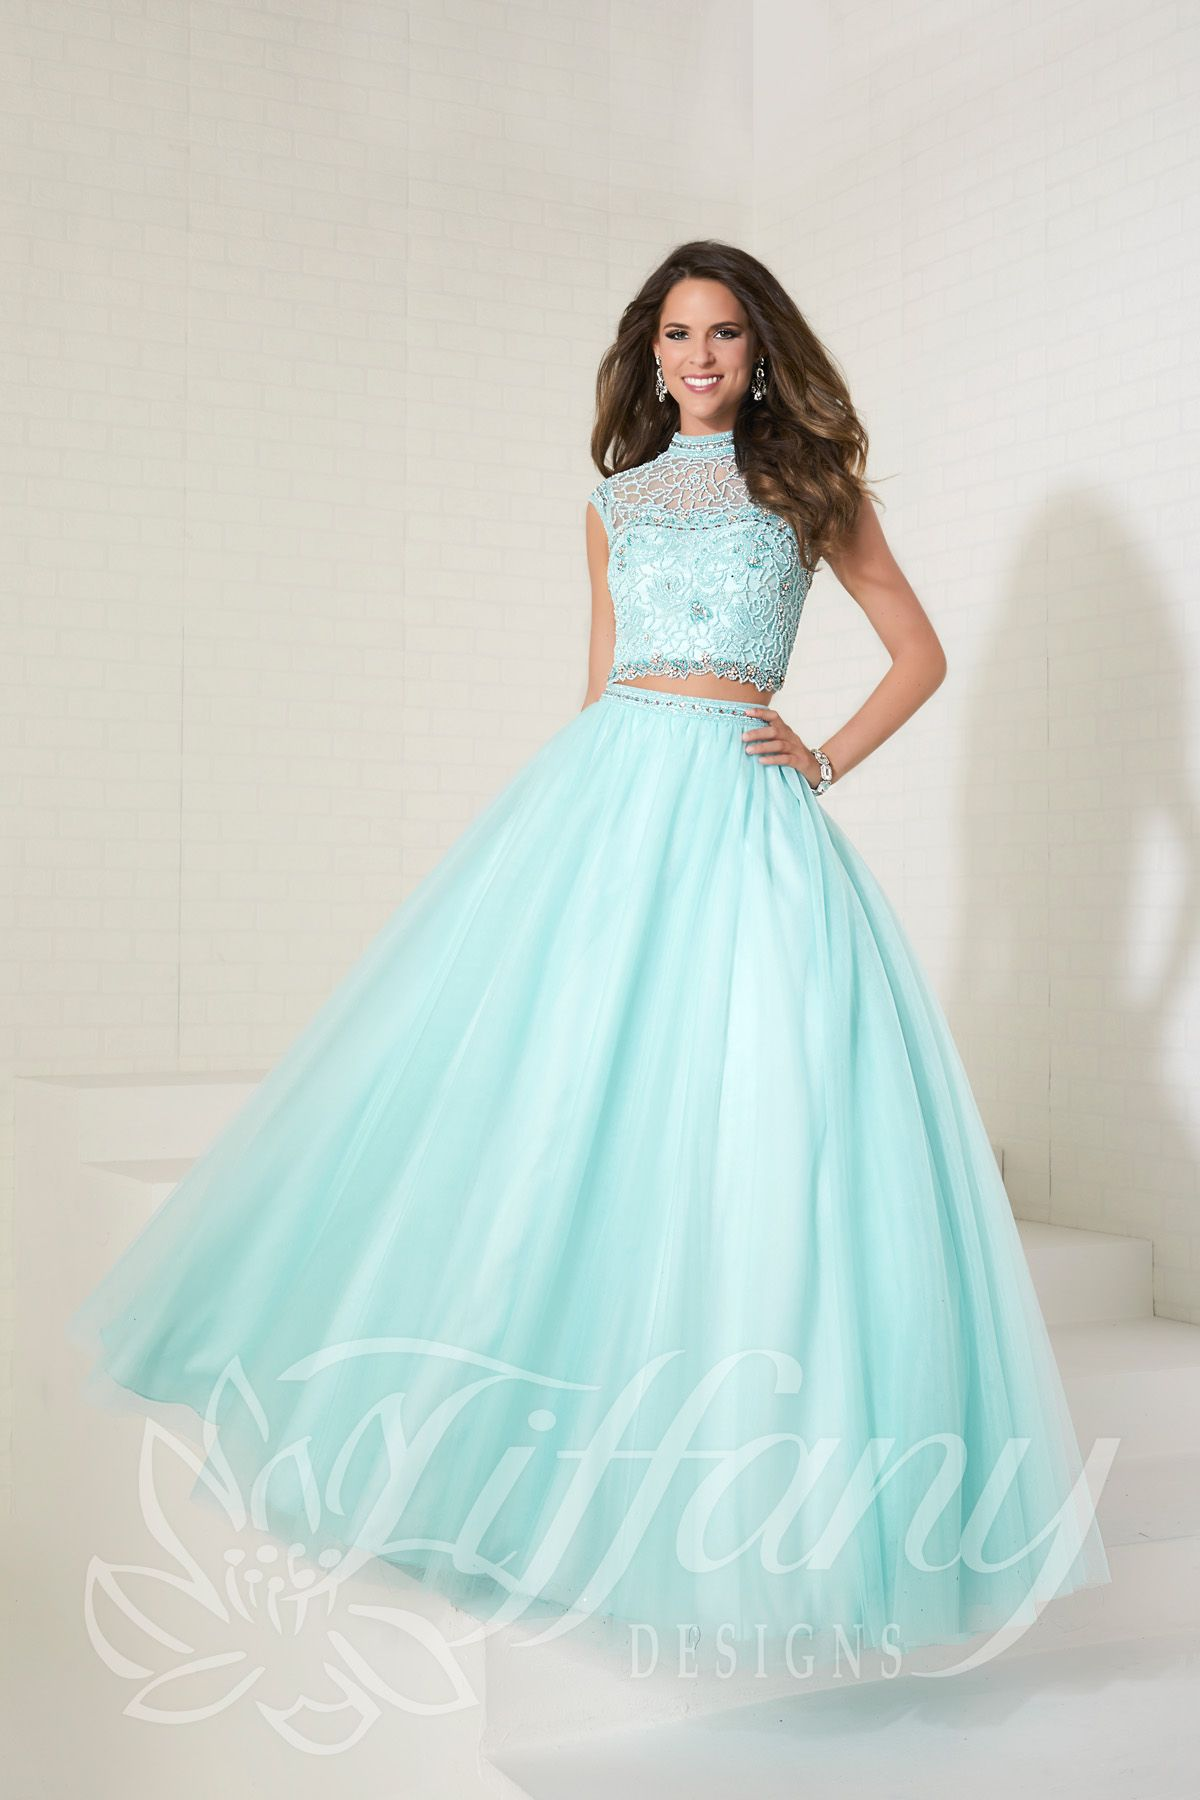 Awesome Prom Dress Shops In Ct Gallery - Wedding Dress Ideas ...